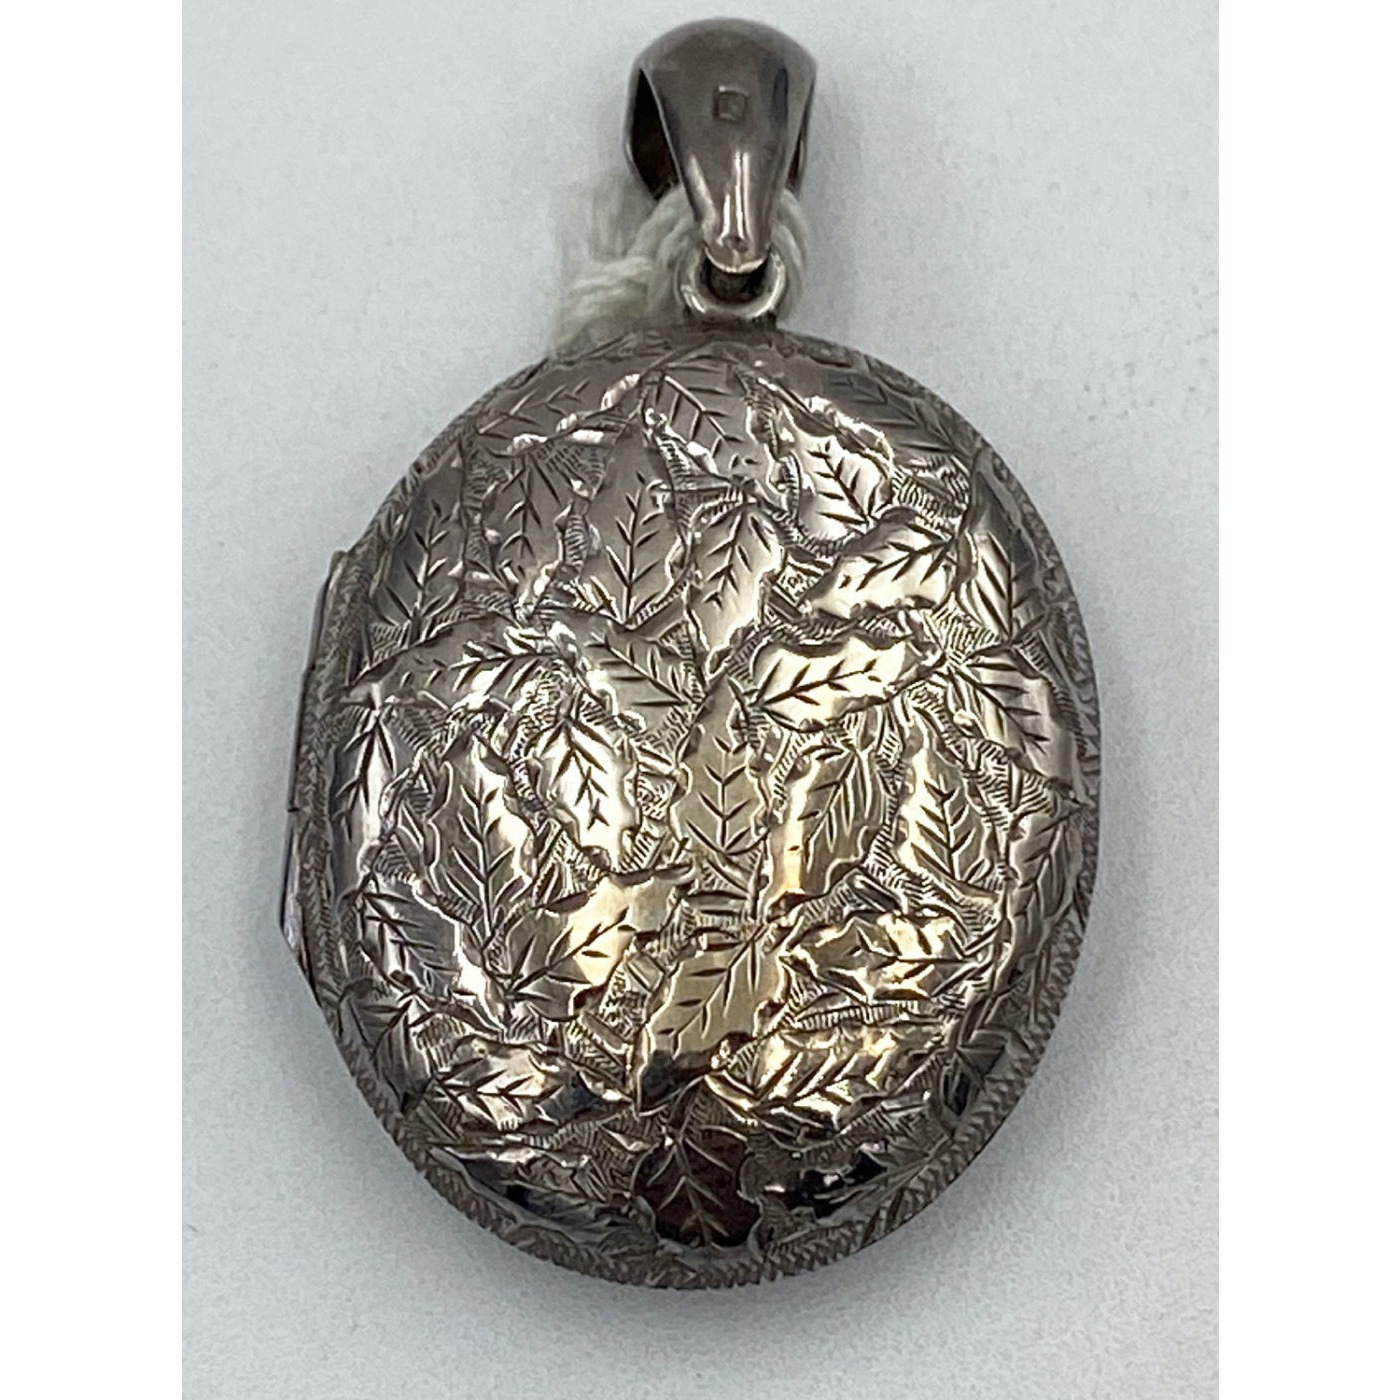 Fabulous Intricate Floral Hallmarked Victorian English Locket